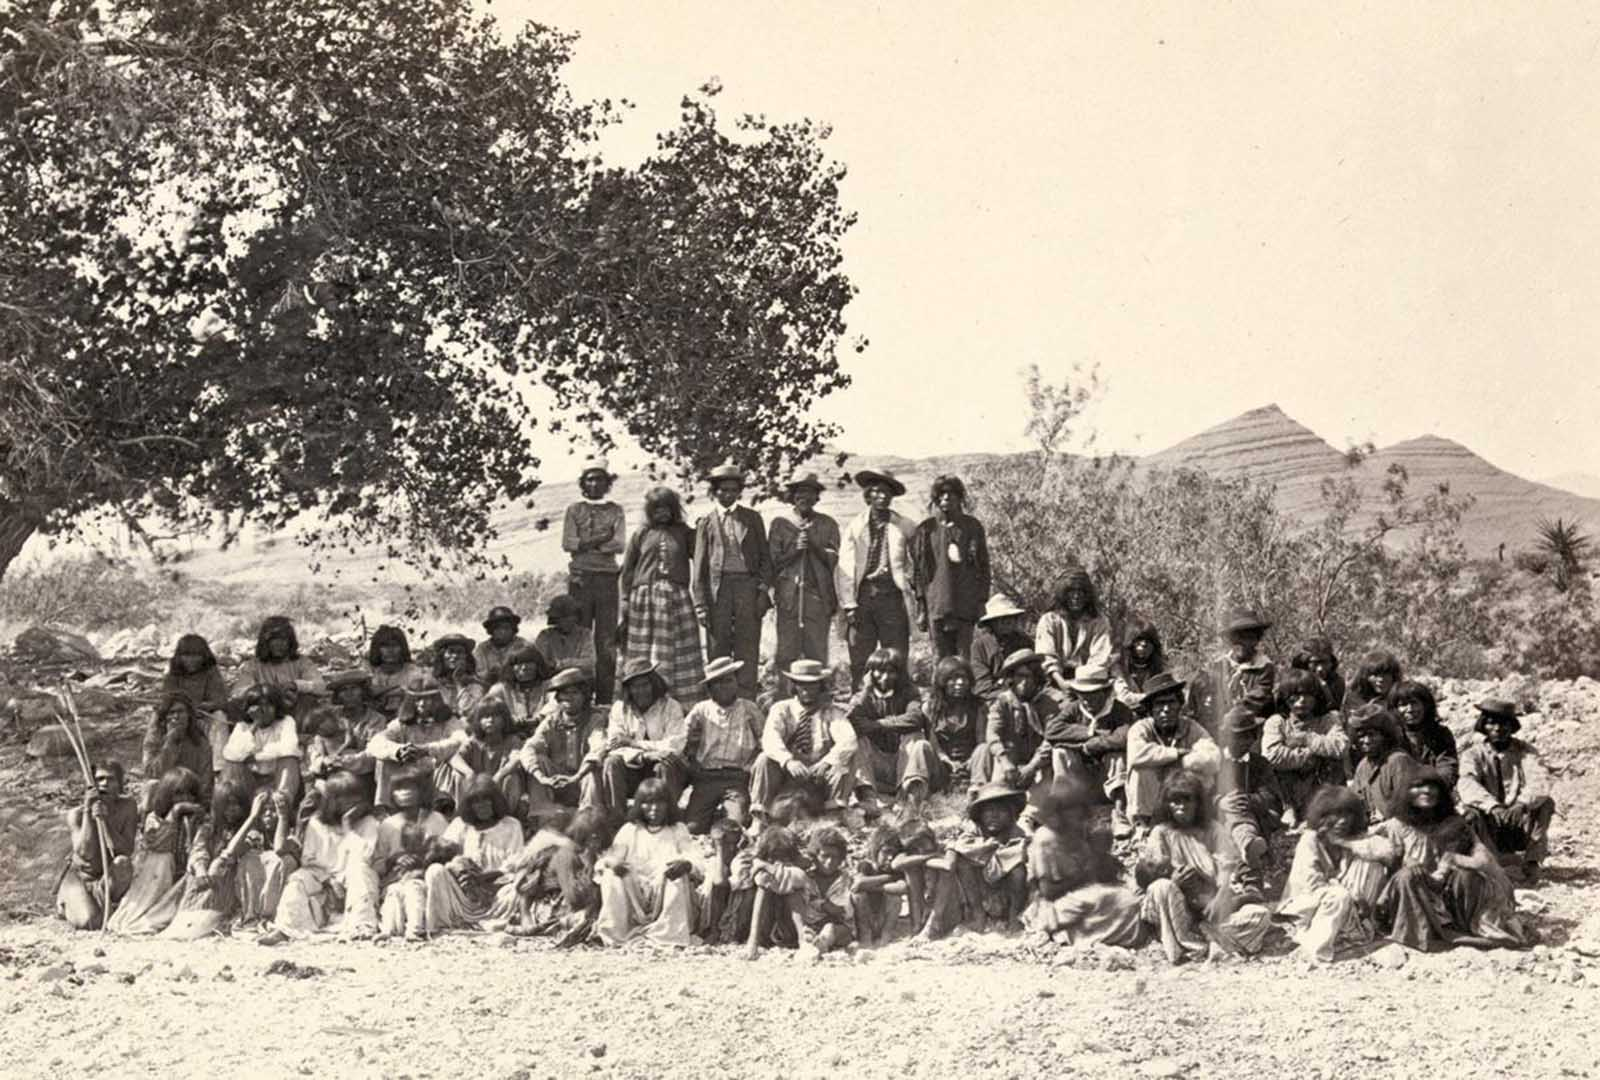 Native American (Paiute) men, women and children sit or stand and pose in rows under a tree near probably Cottonwood Springs (Washoe County), Nevada, in 1875.